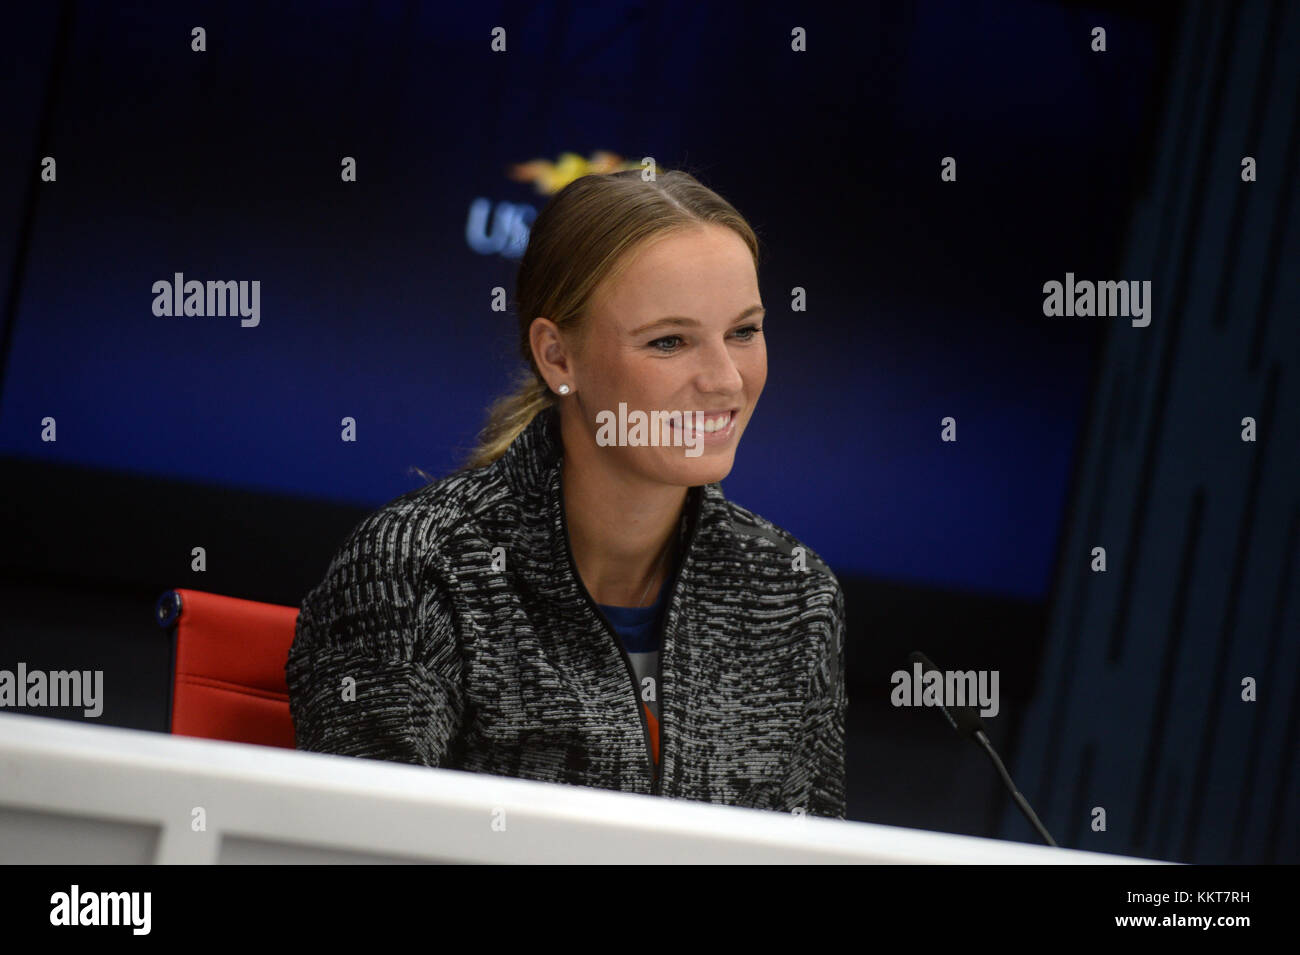 NEW YORK, USA - AUGUST 26: Caroline Wozniacki speaks during a press conference ahead of 2017 US Open Tennis Championships - Stock Image